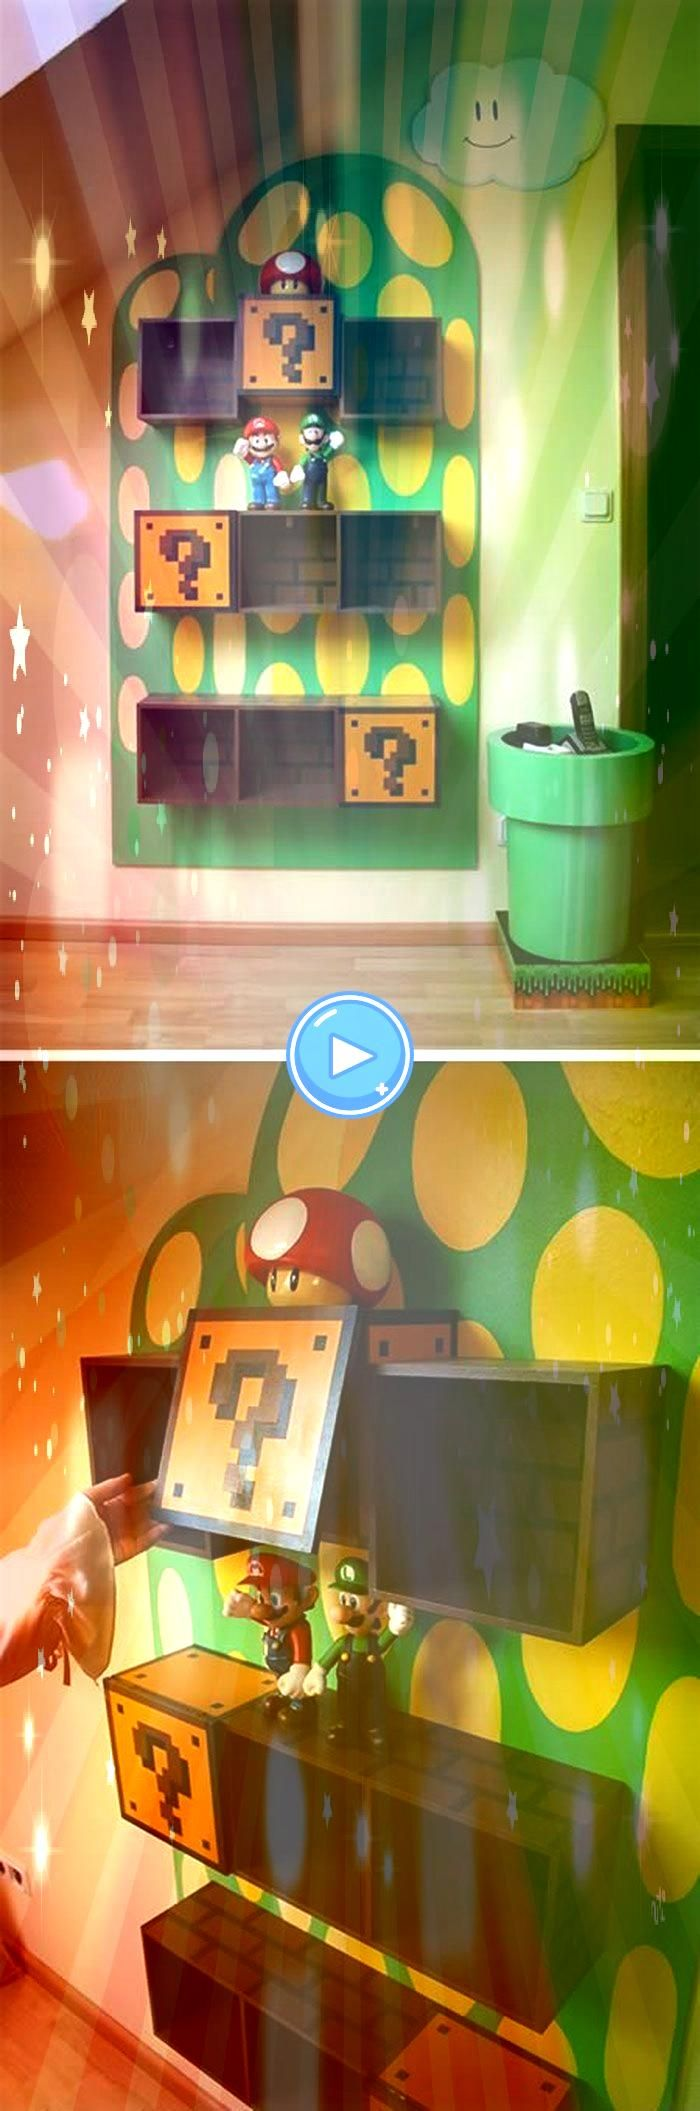 Itsa Mario I should put this in the upstairs bathroom Waterproof Decorative Wall Sticker 21 Truly Awesome Video Game Room Ideas Make the perfect gaming paradise in your...